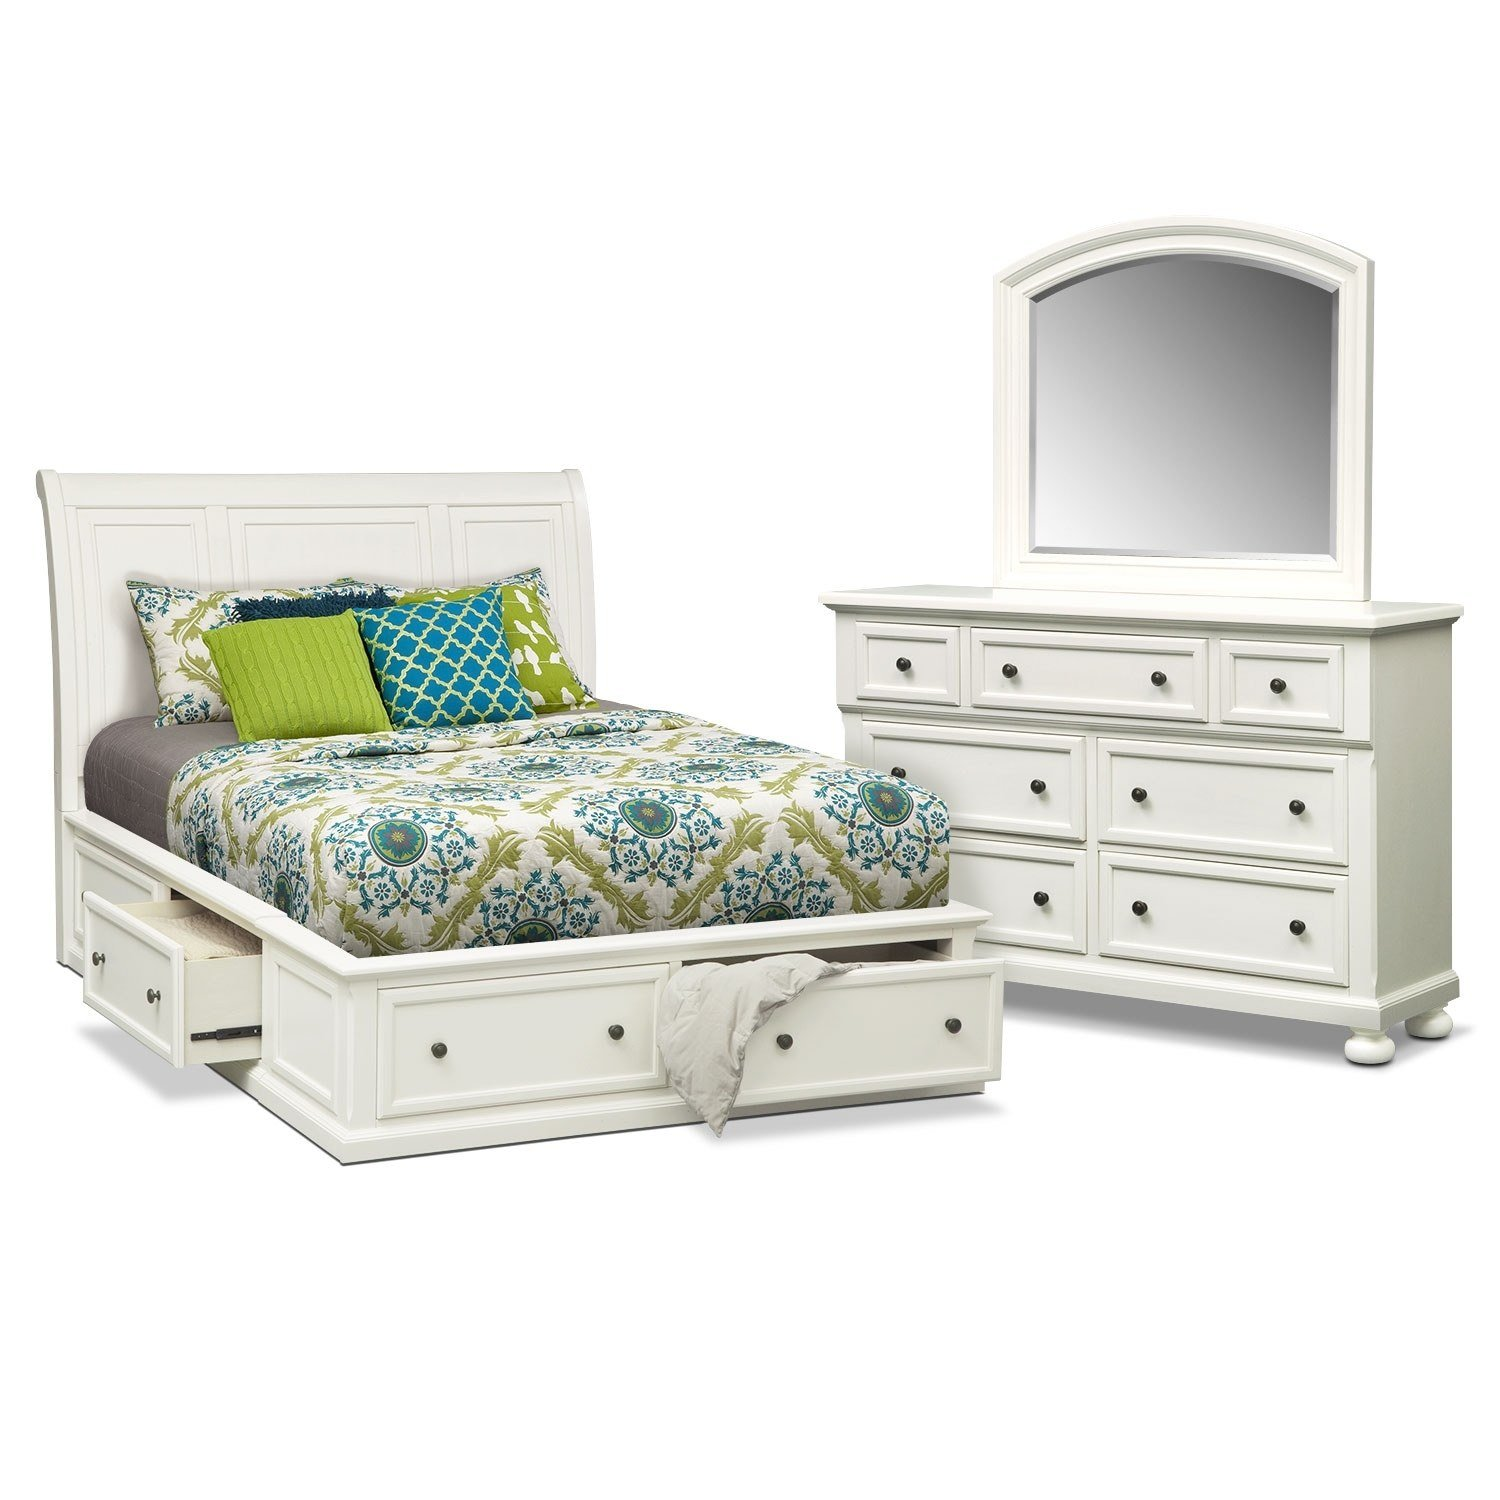 Best Hanover 5 Piece Queen Storage Bedroom Set White Value With Pictures